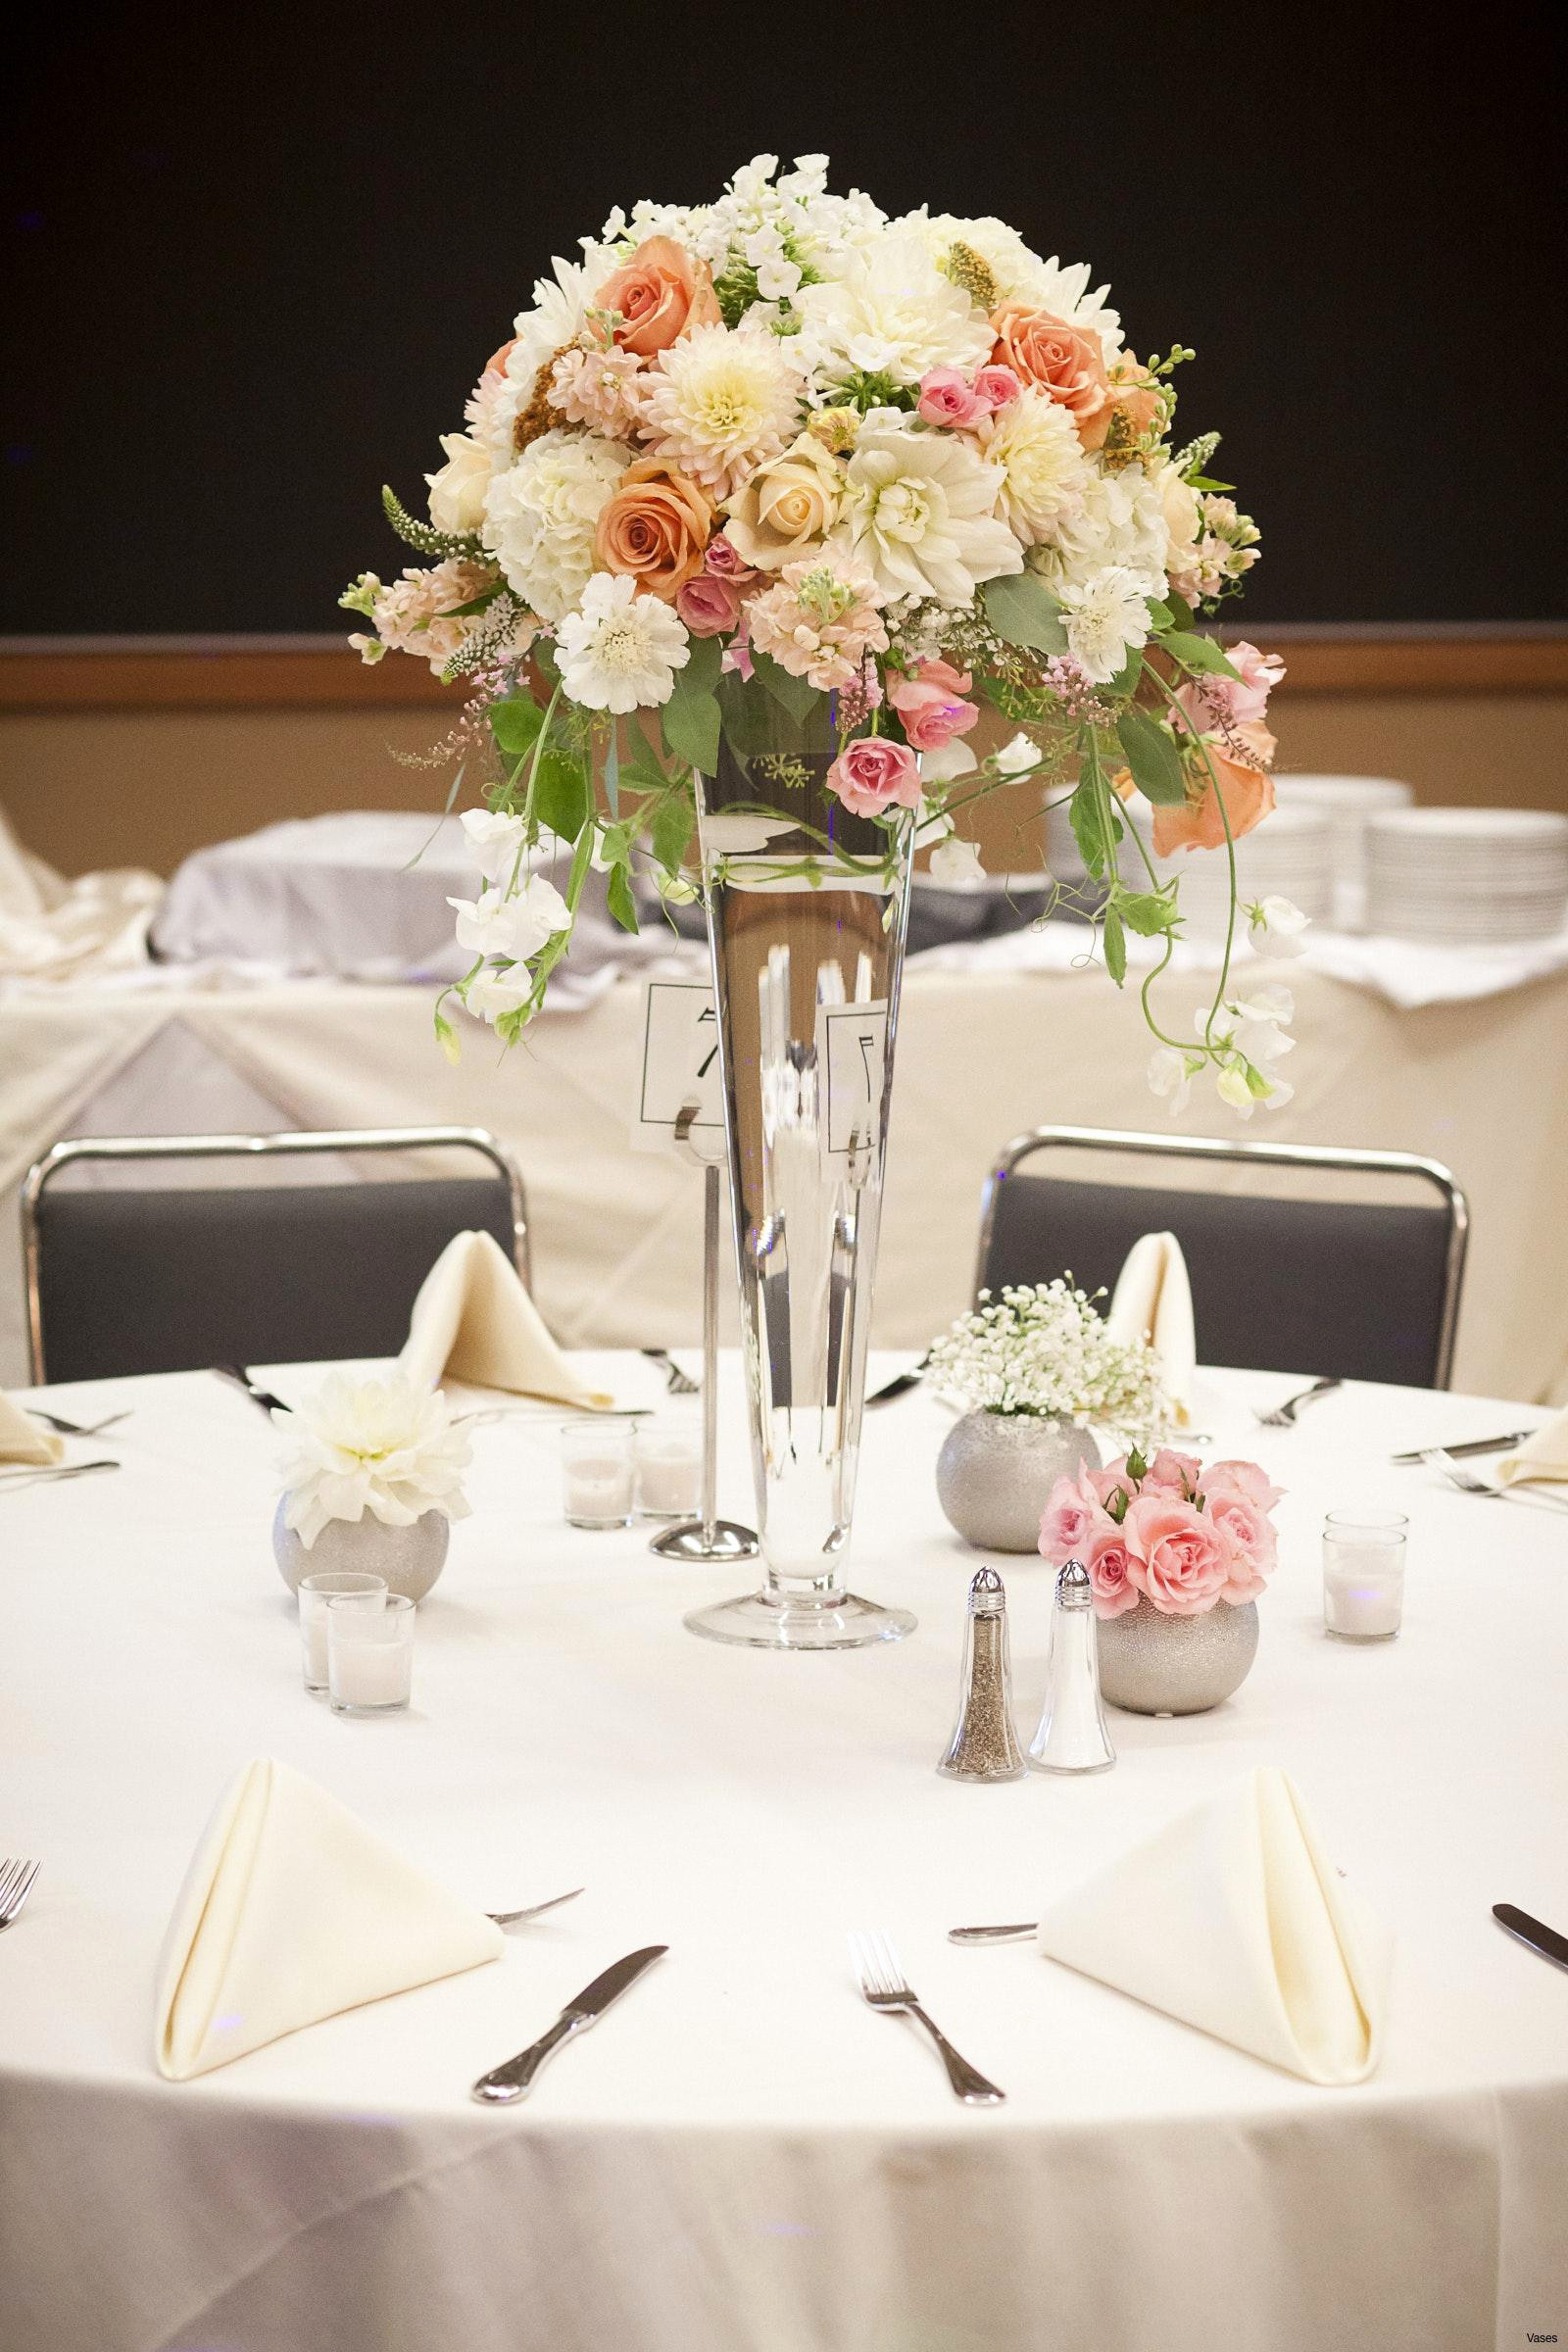 inexpensive clear glass vases of 26 luxury wedding centerpieces ideas sokitchenlv in wedding centerpieces ideas unique living room vases wedding inspirational h vases candy vase i 0d of